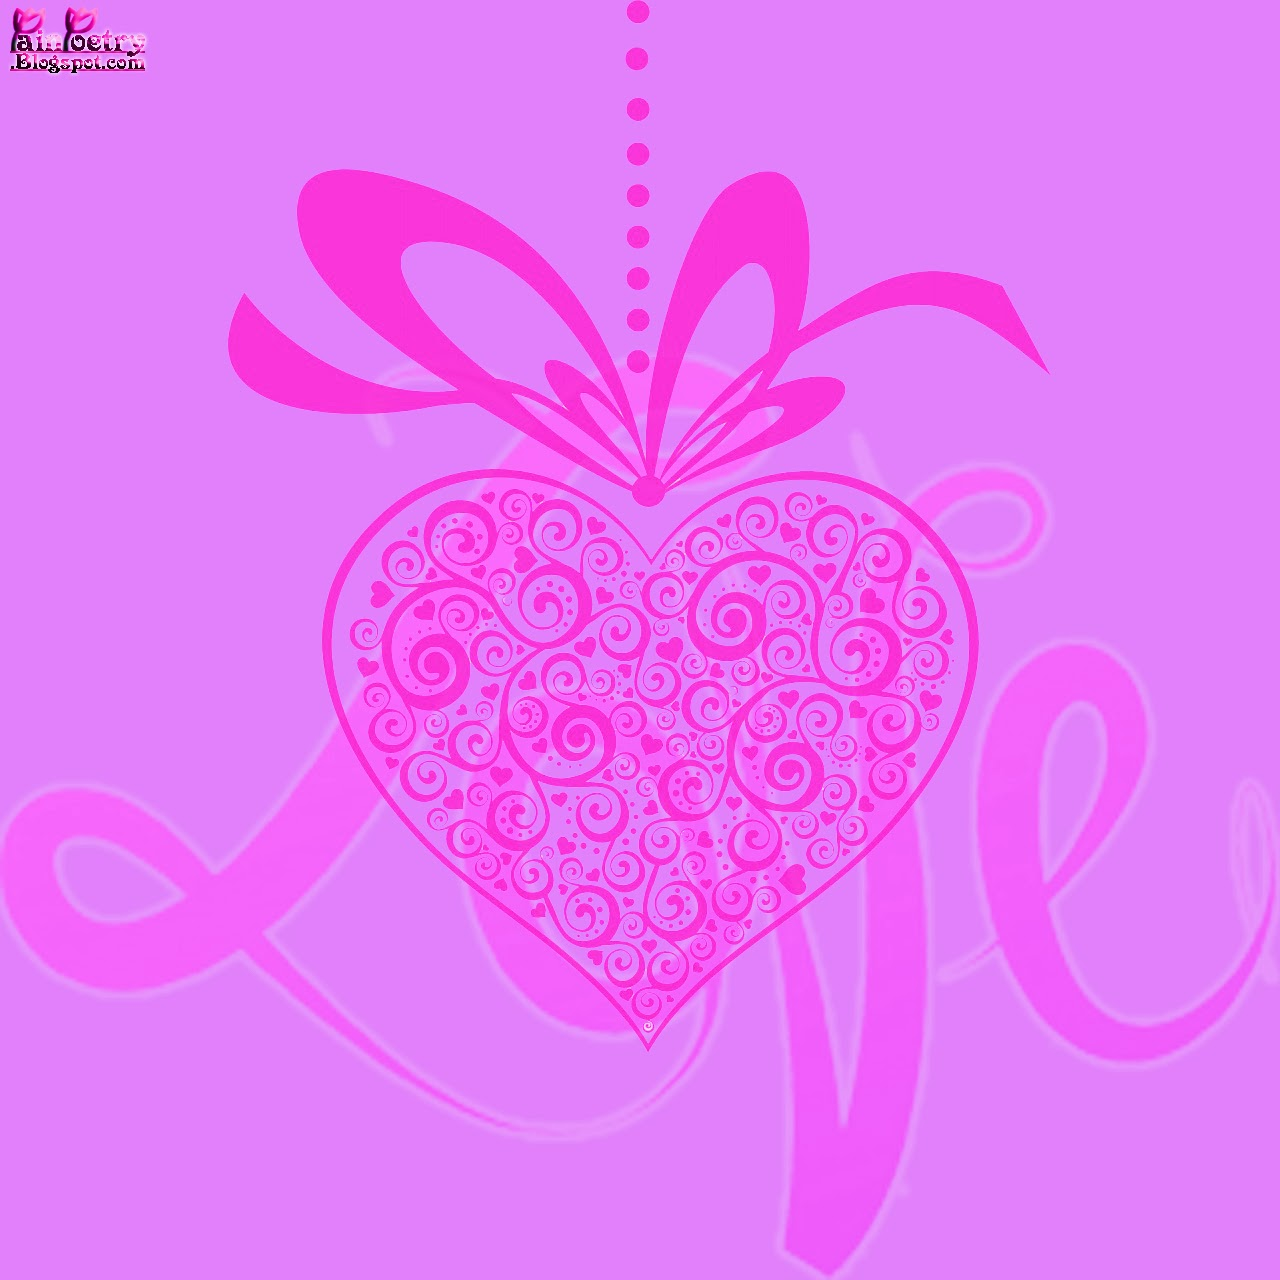 Happy-Valentines-Day-Of-Celebration-For-Lovers-With-Heart-Image-HD-Wide